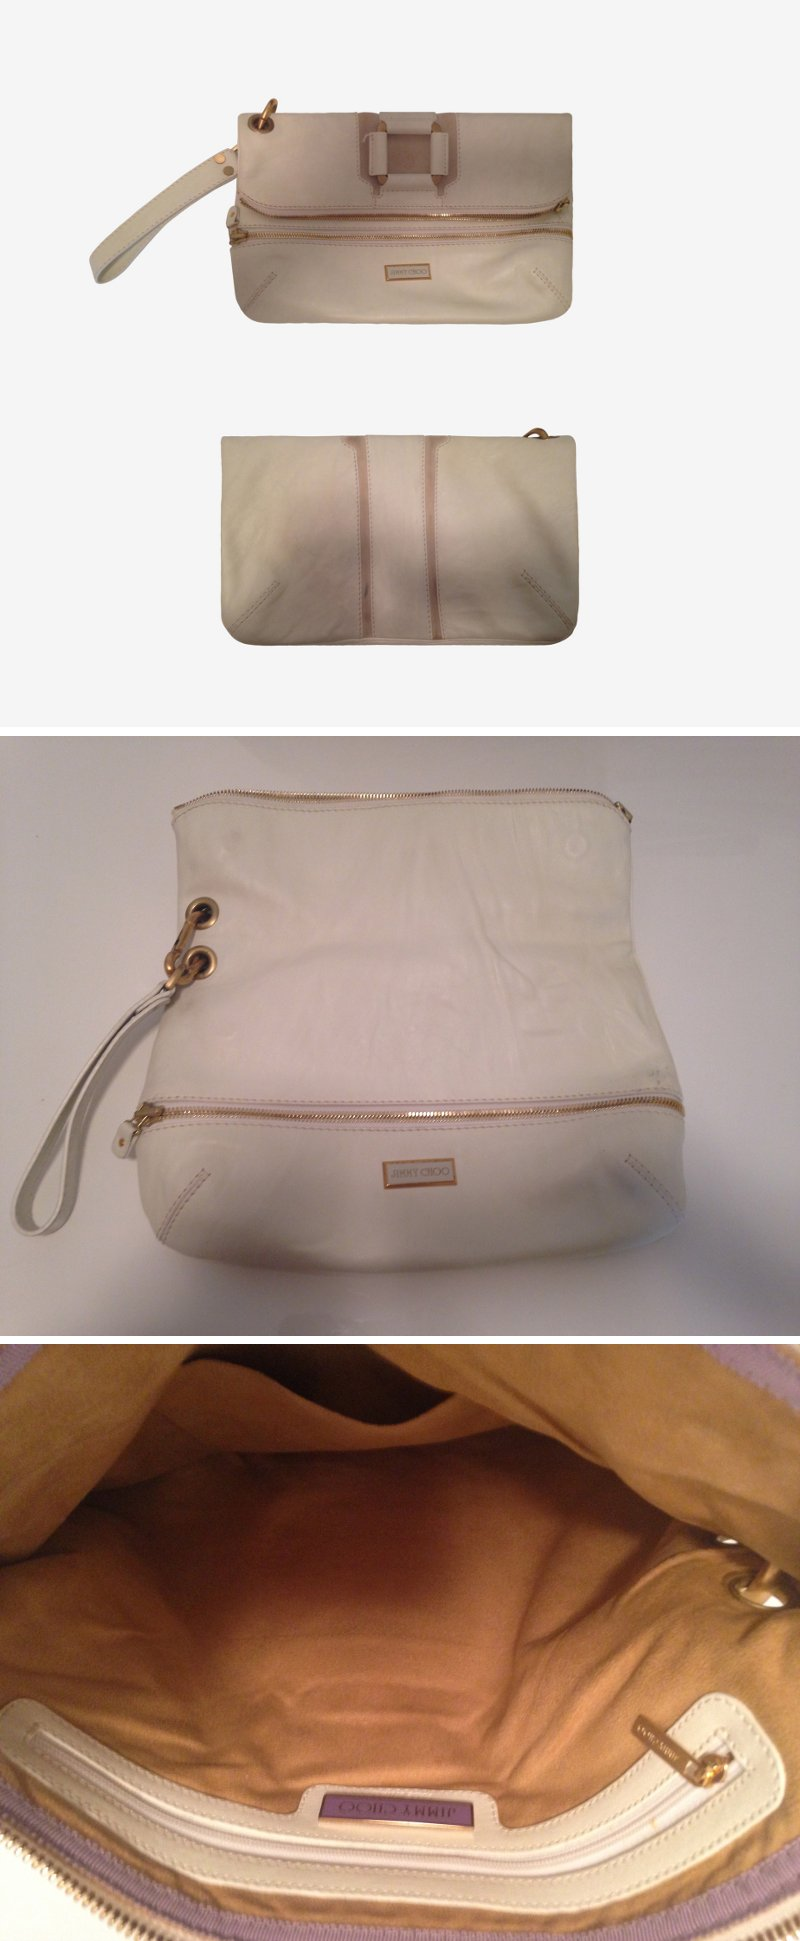 is it ok for someone sell fake prada bags on ebay if they clearly list